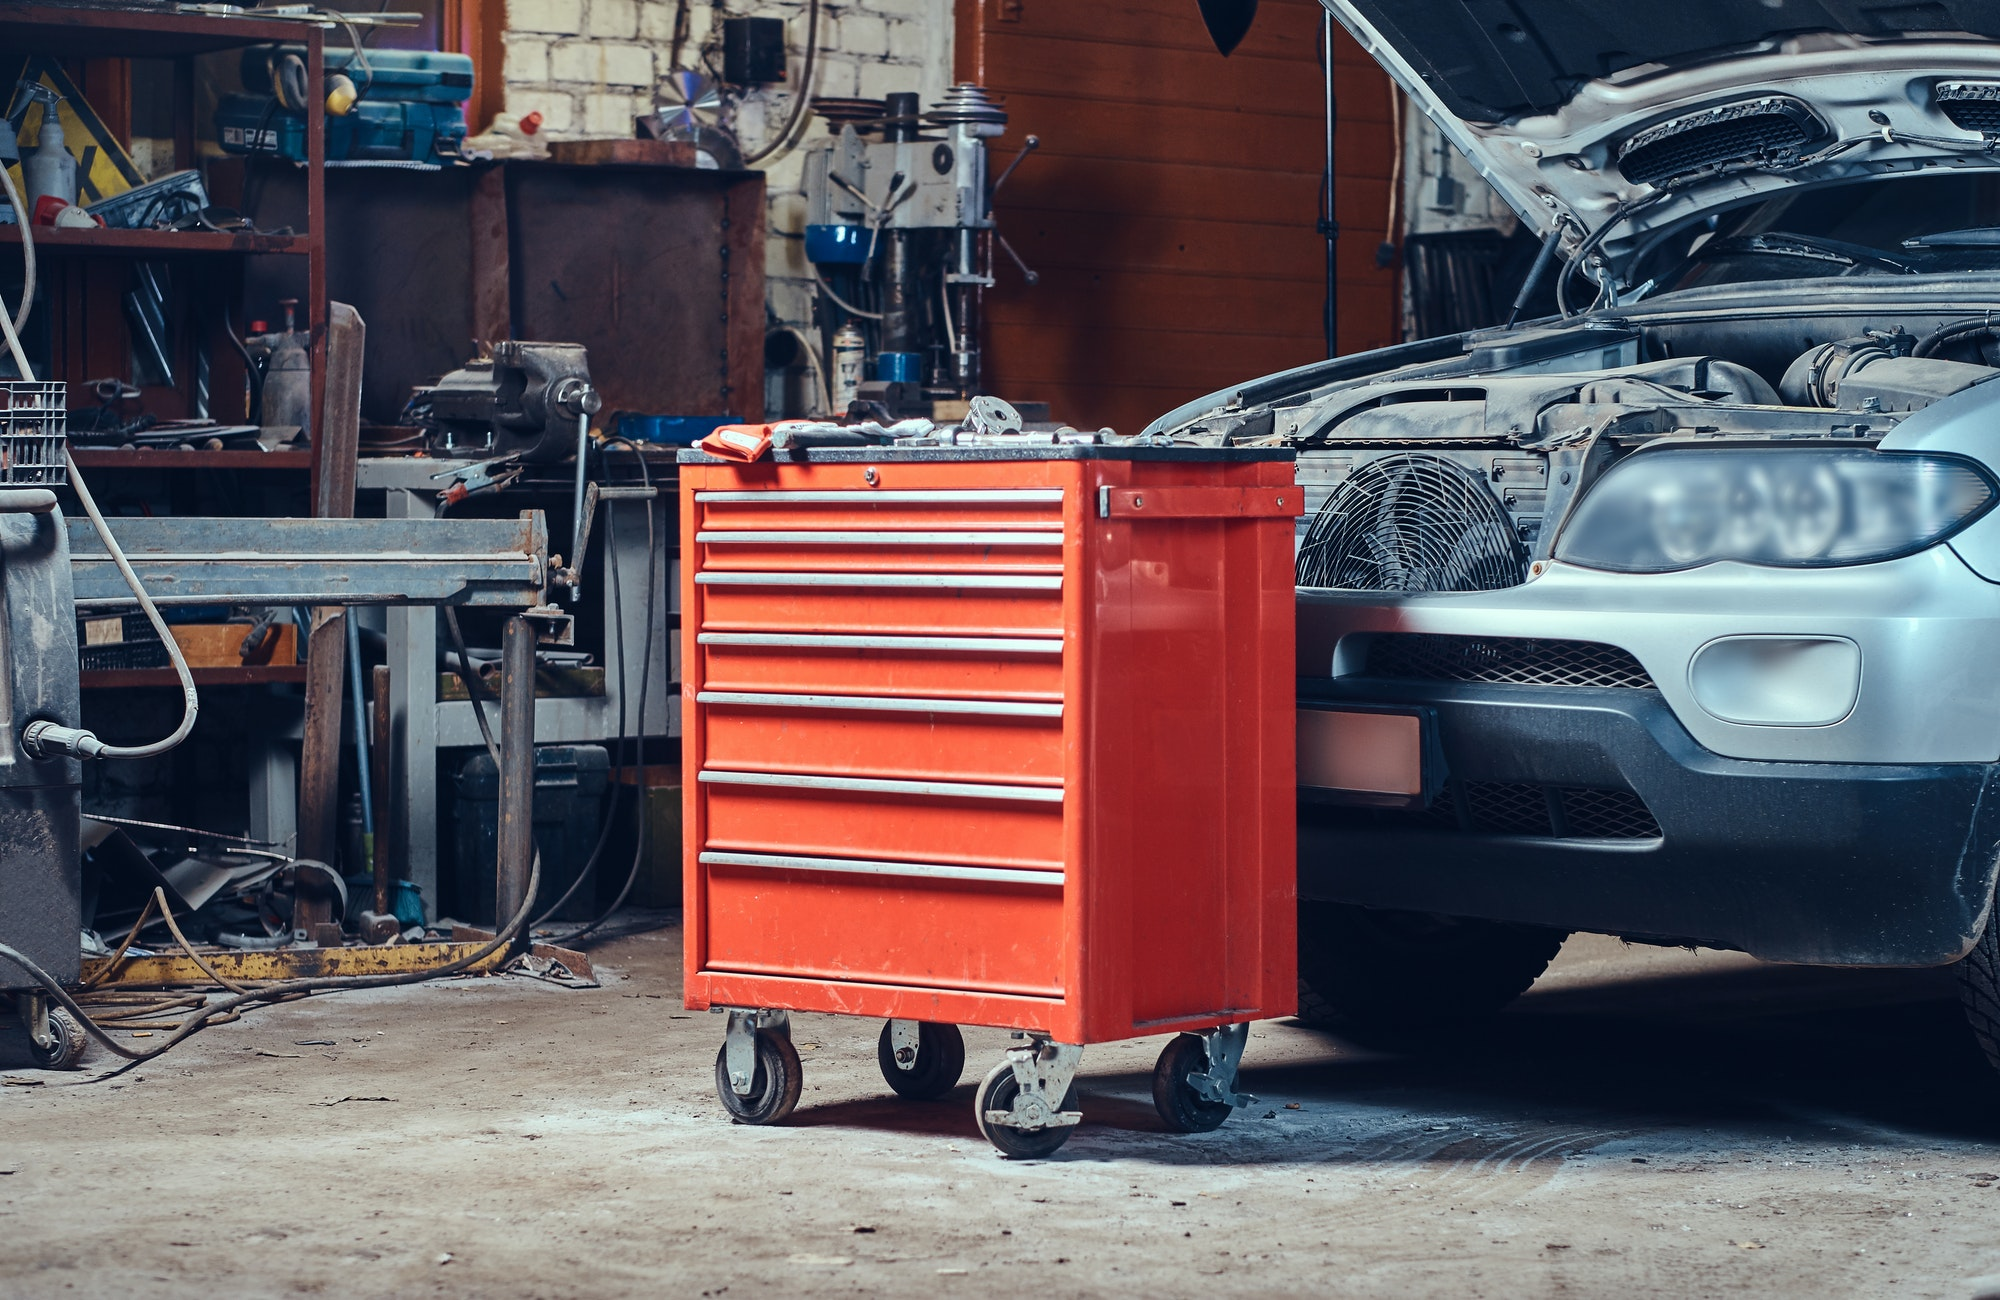 Red tool box in a garage.